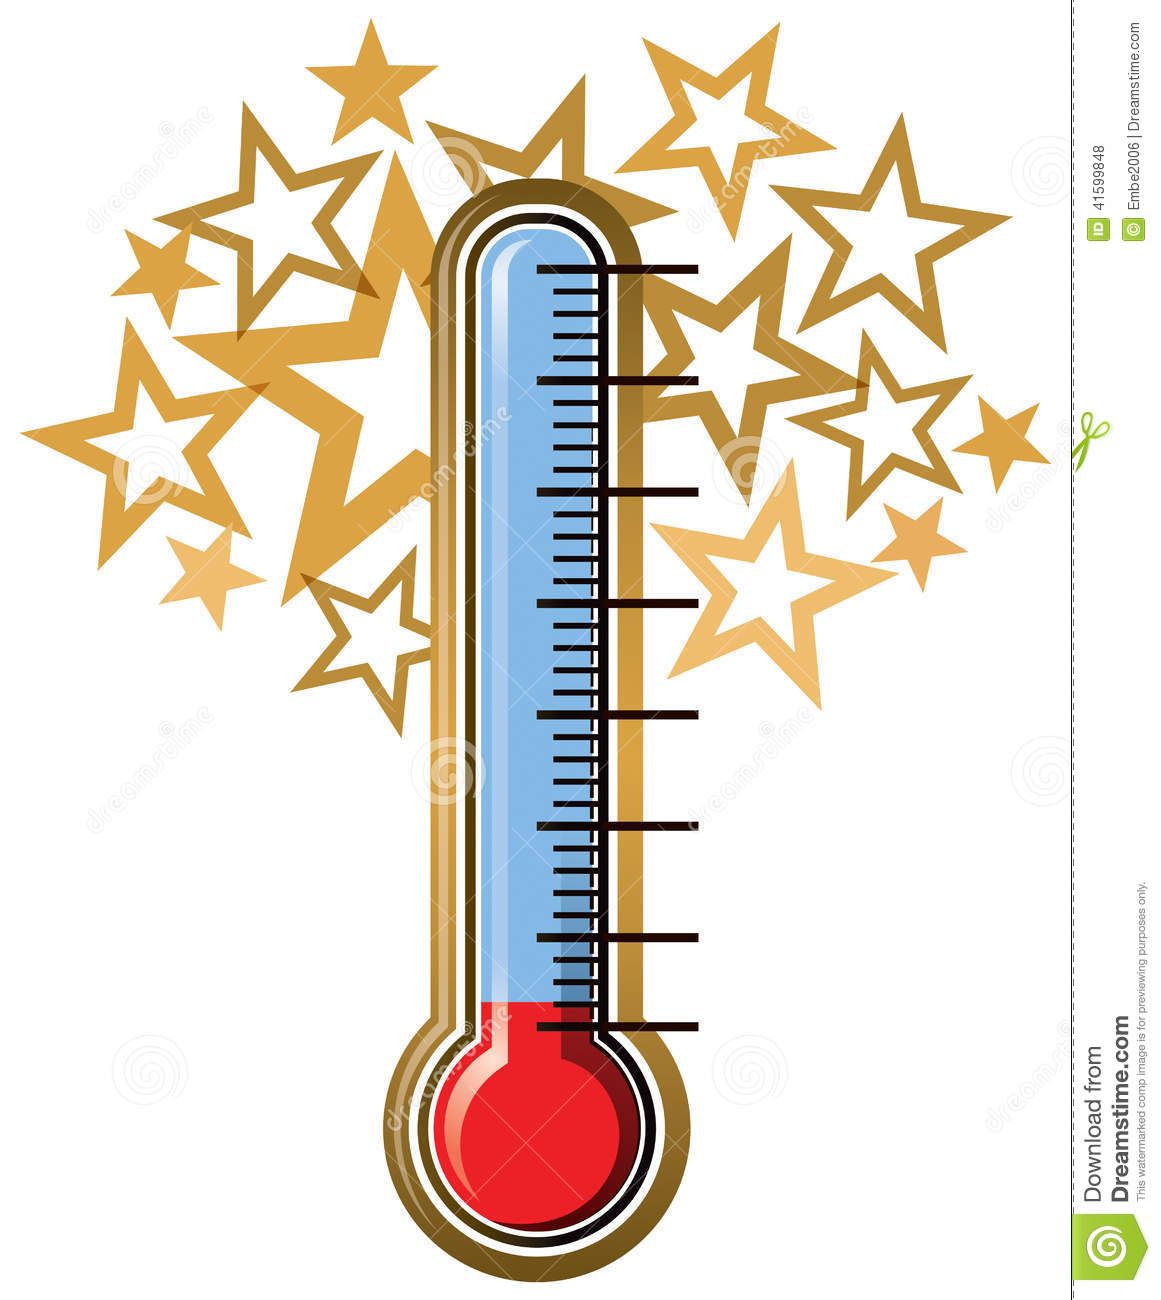 Balnk Sales Thermometer